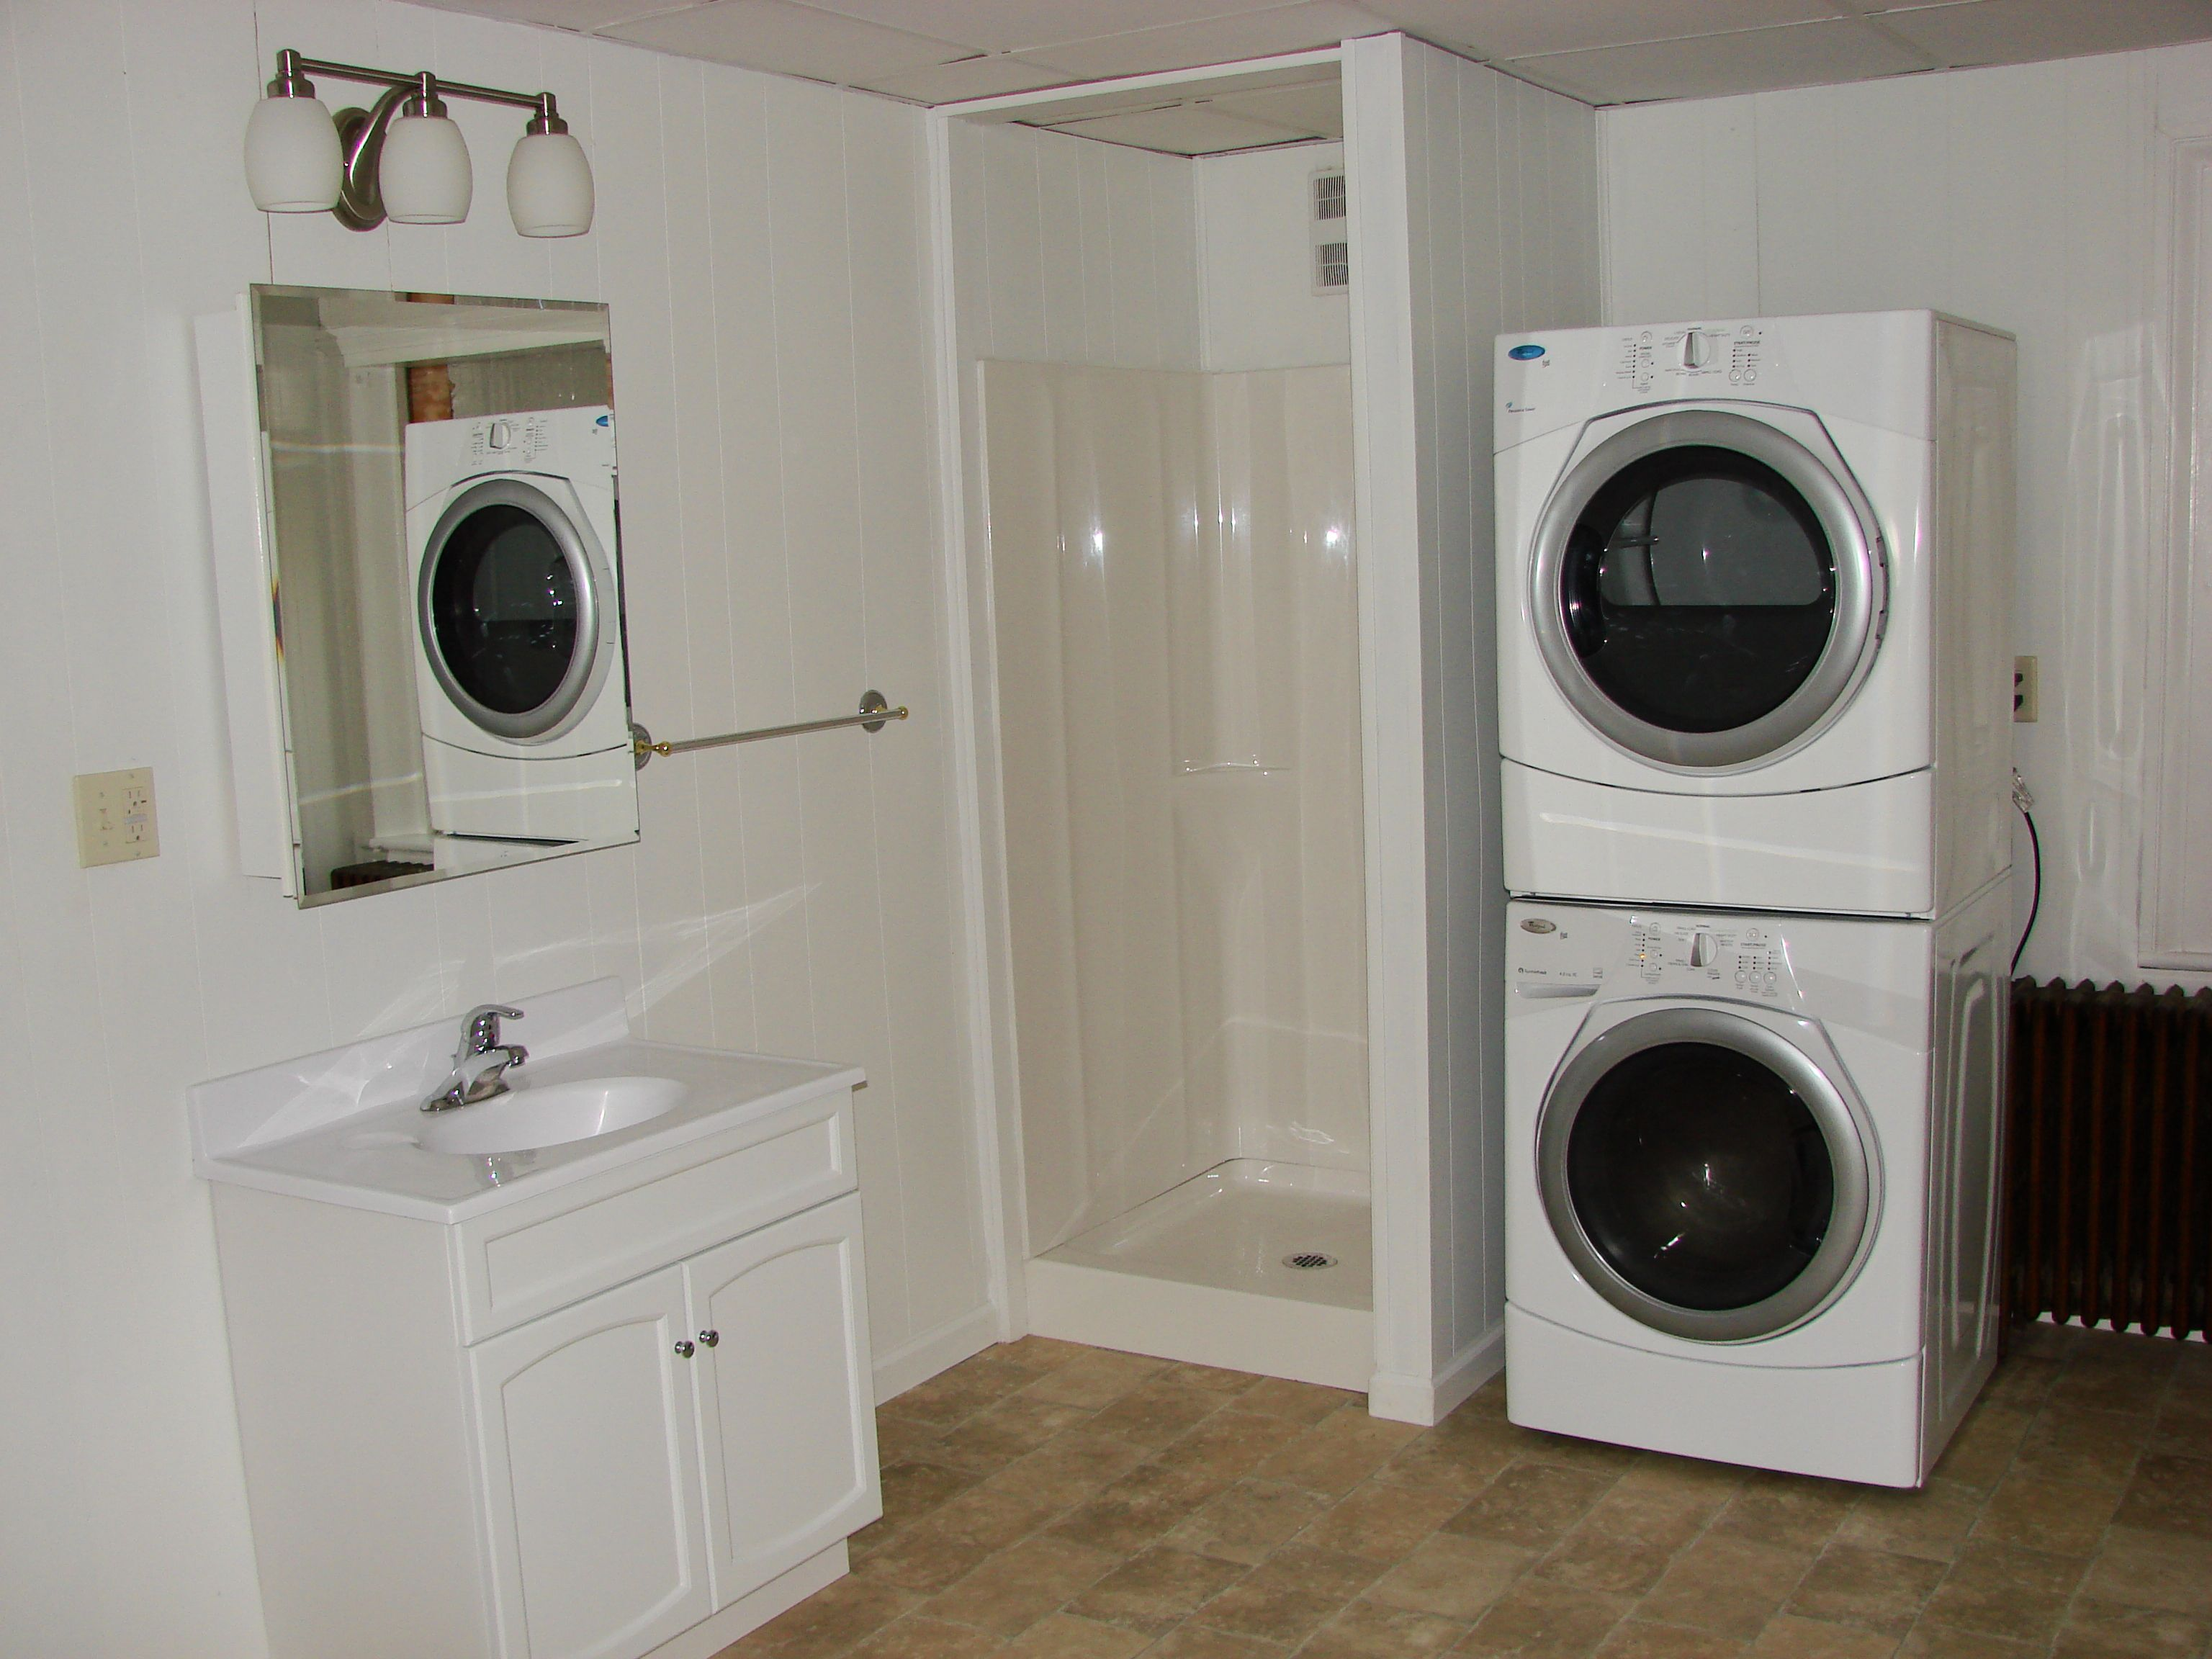 Cool white wash machine and dry machine on the side of for Bathroom and laundry designs